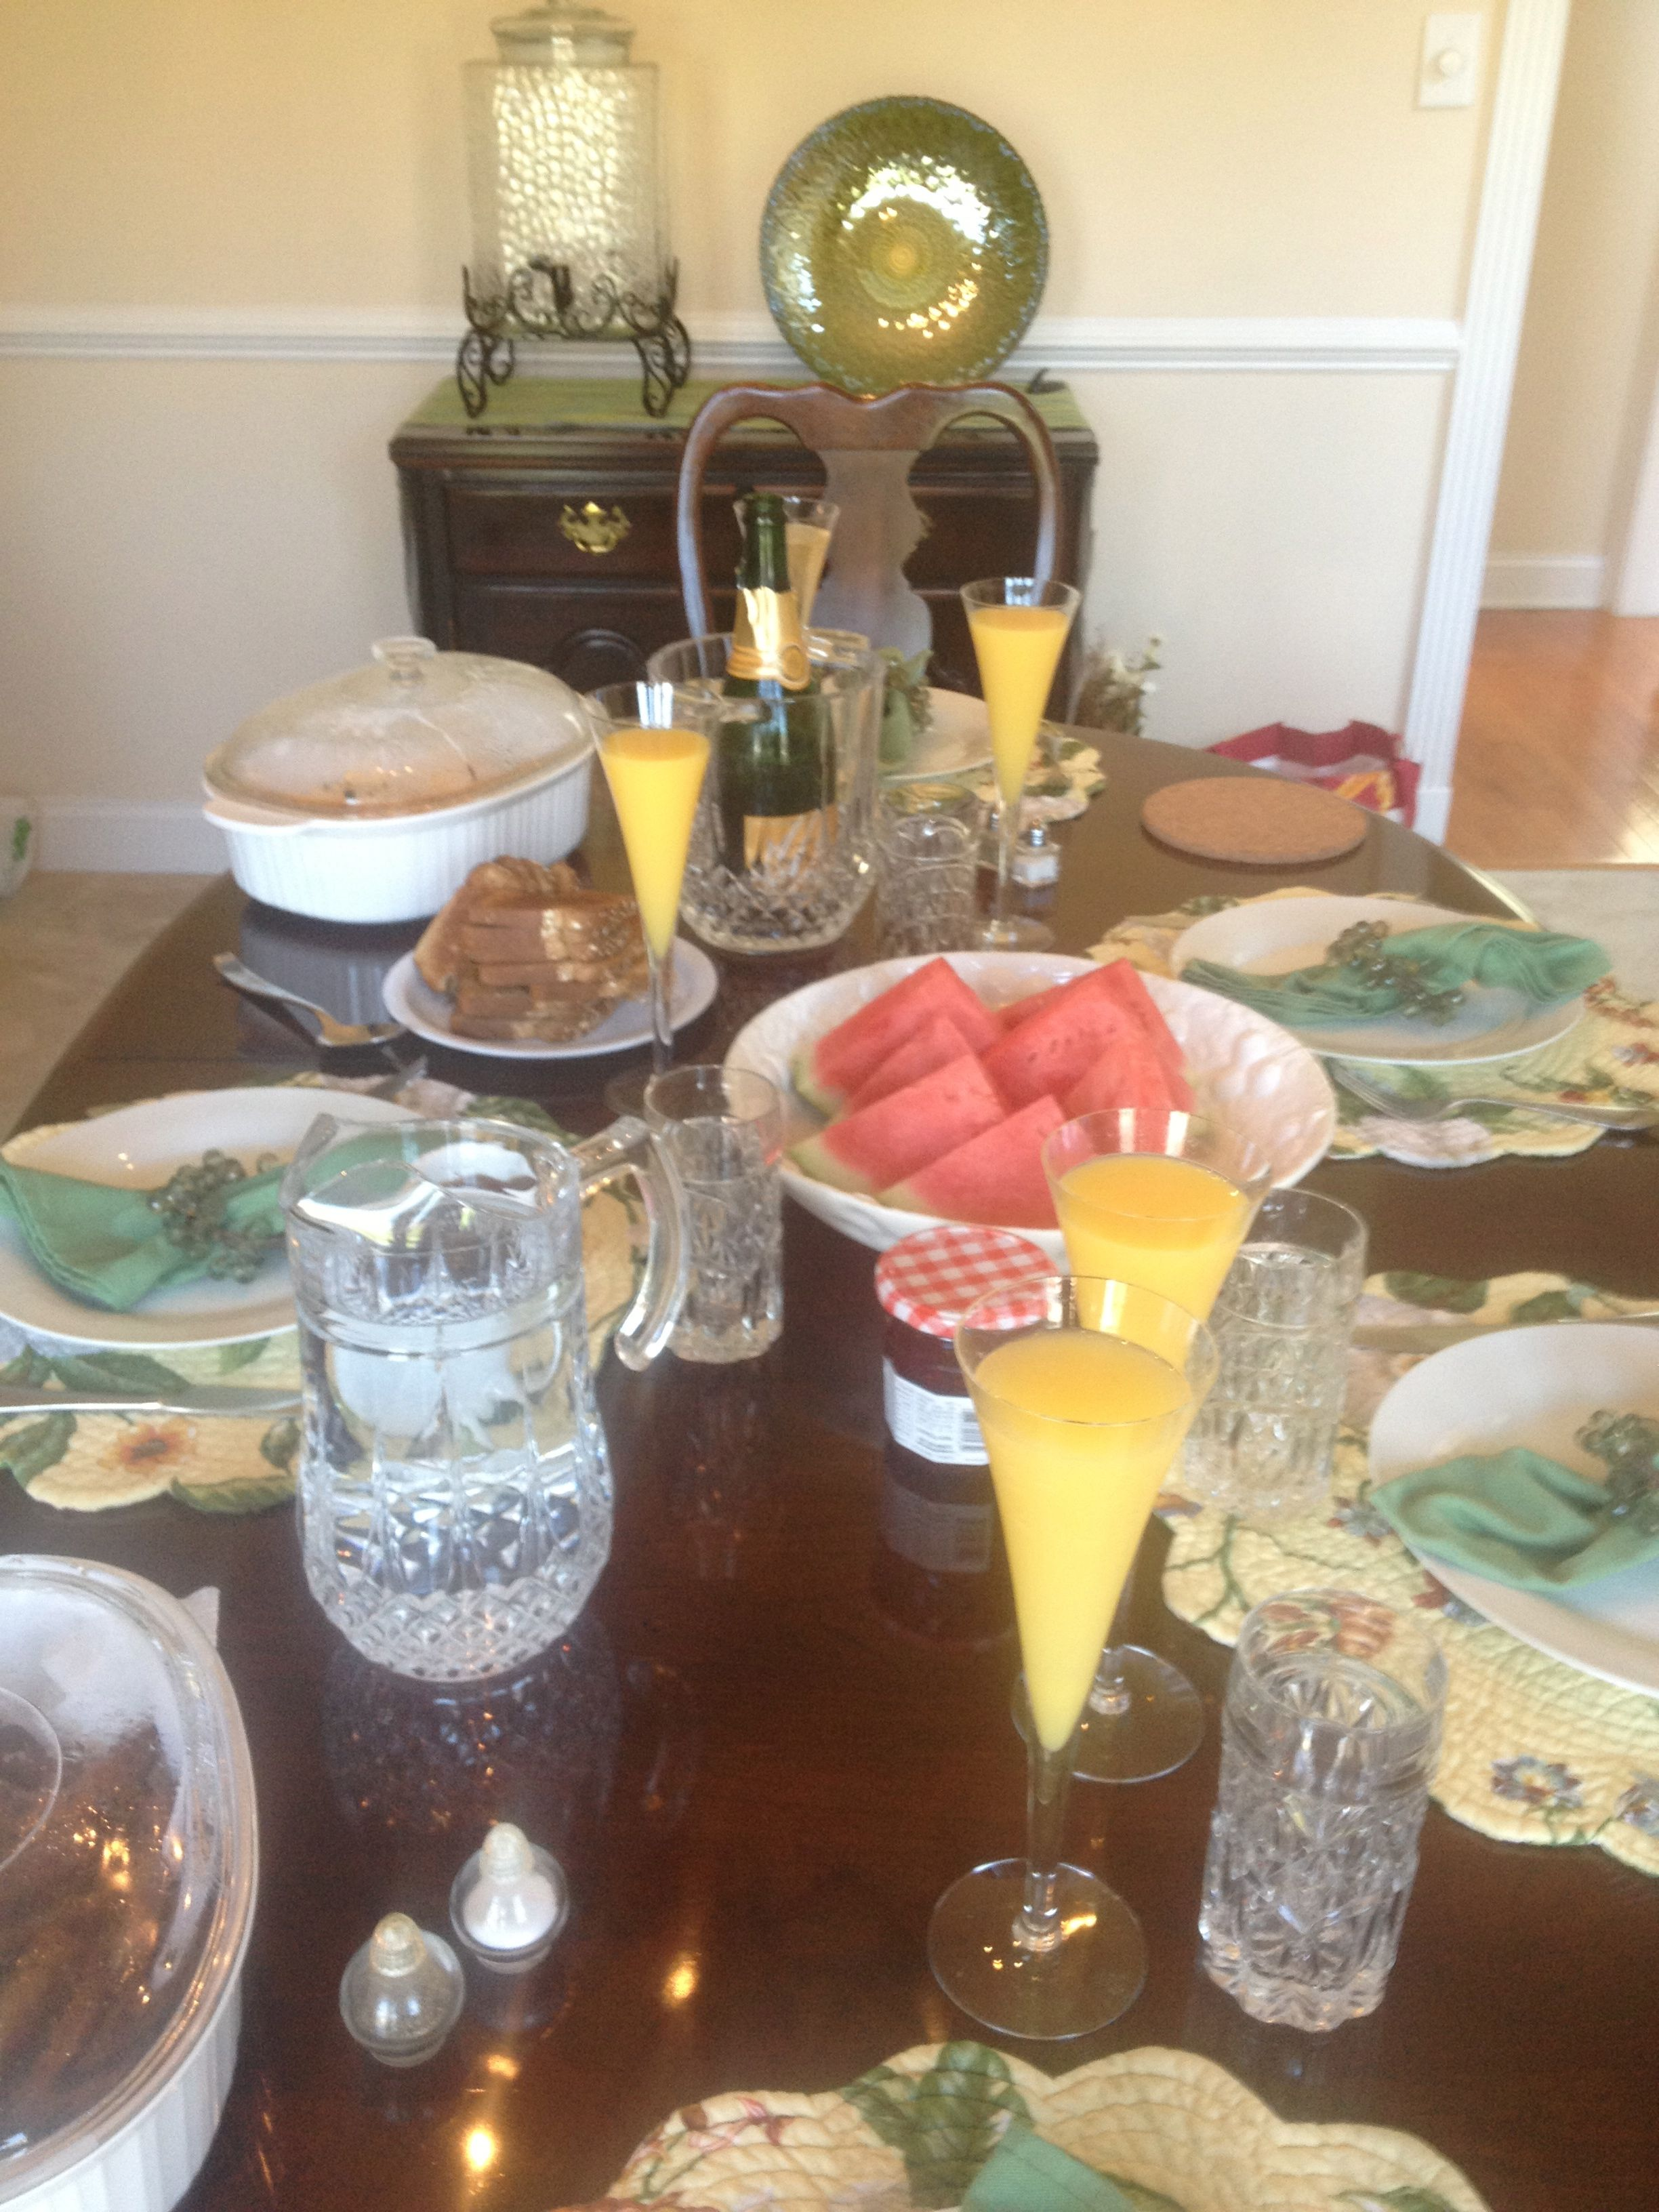 Sunday brunch on a hot summer morning. Fresh Mimosas and watermelon, french eggs and whole grain toast. Pork roast for good measure